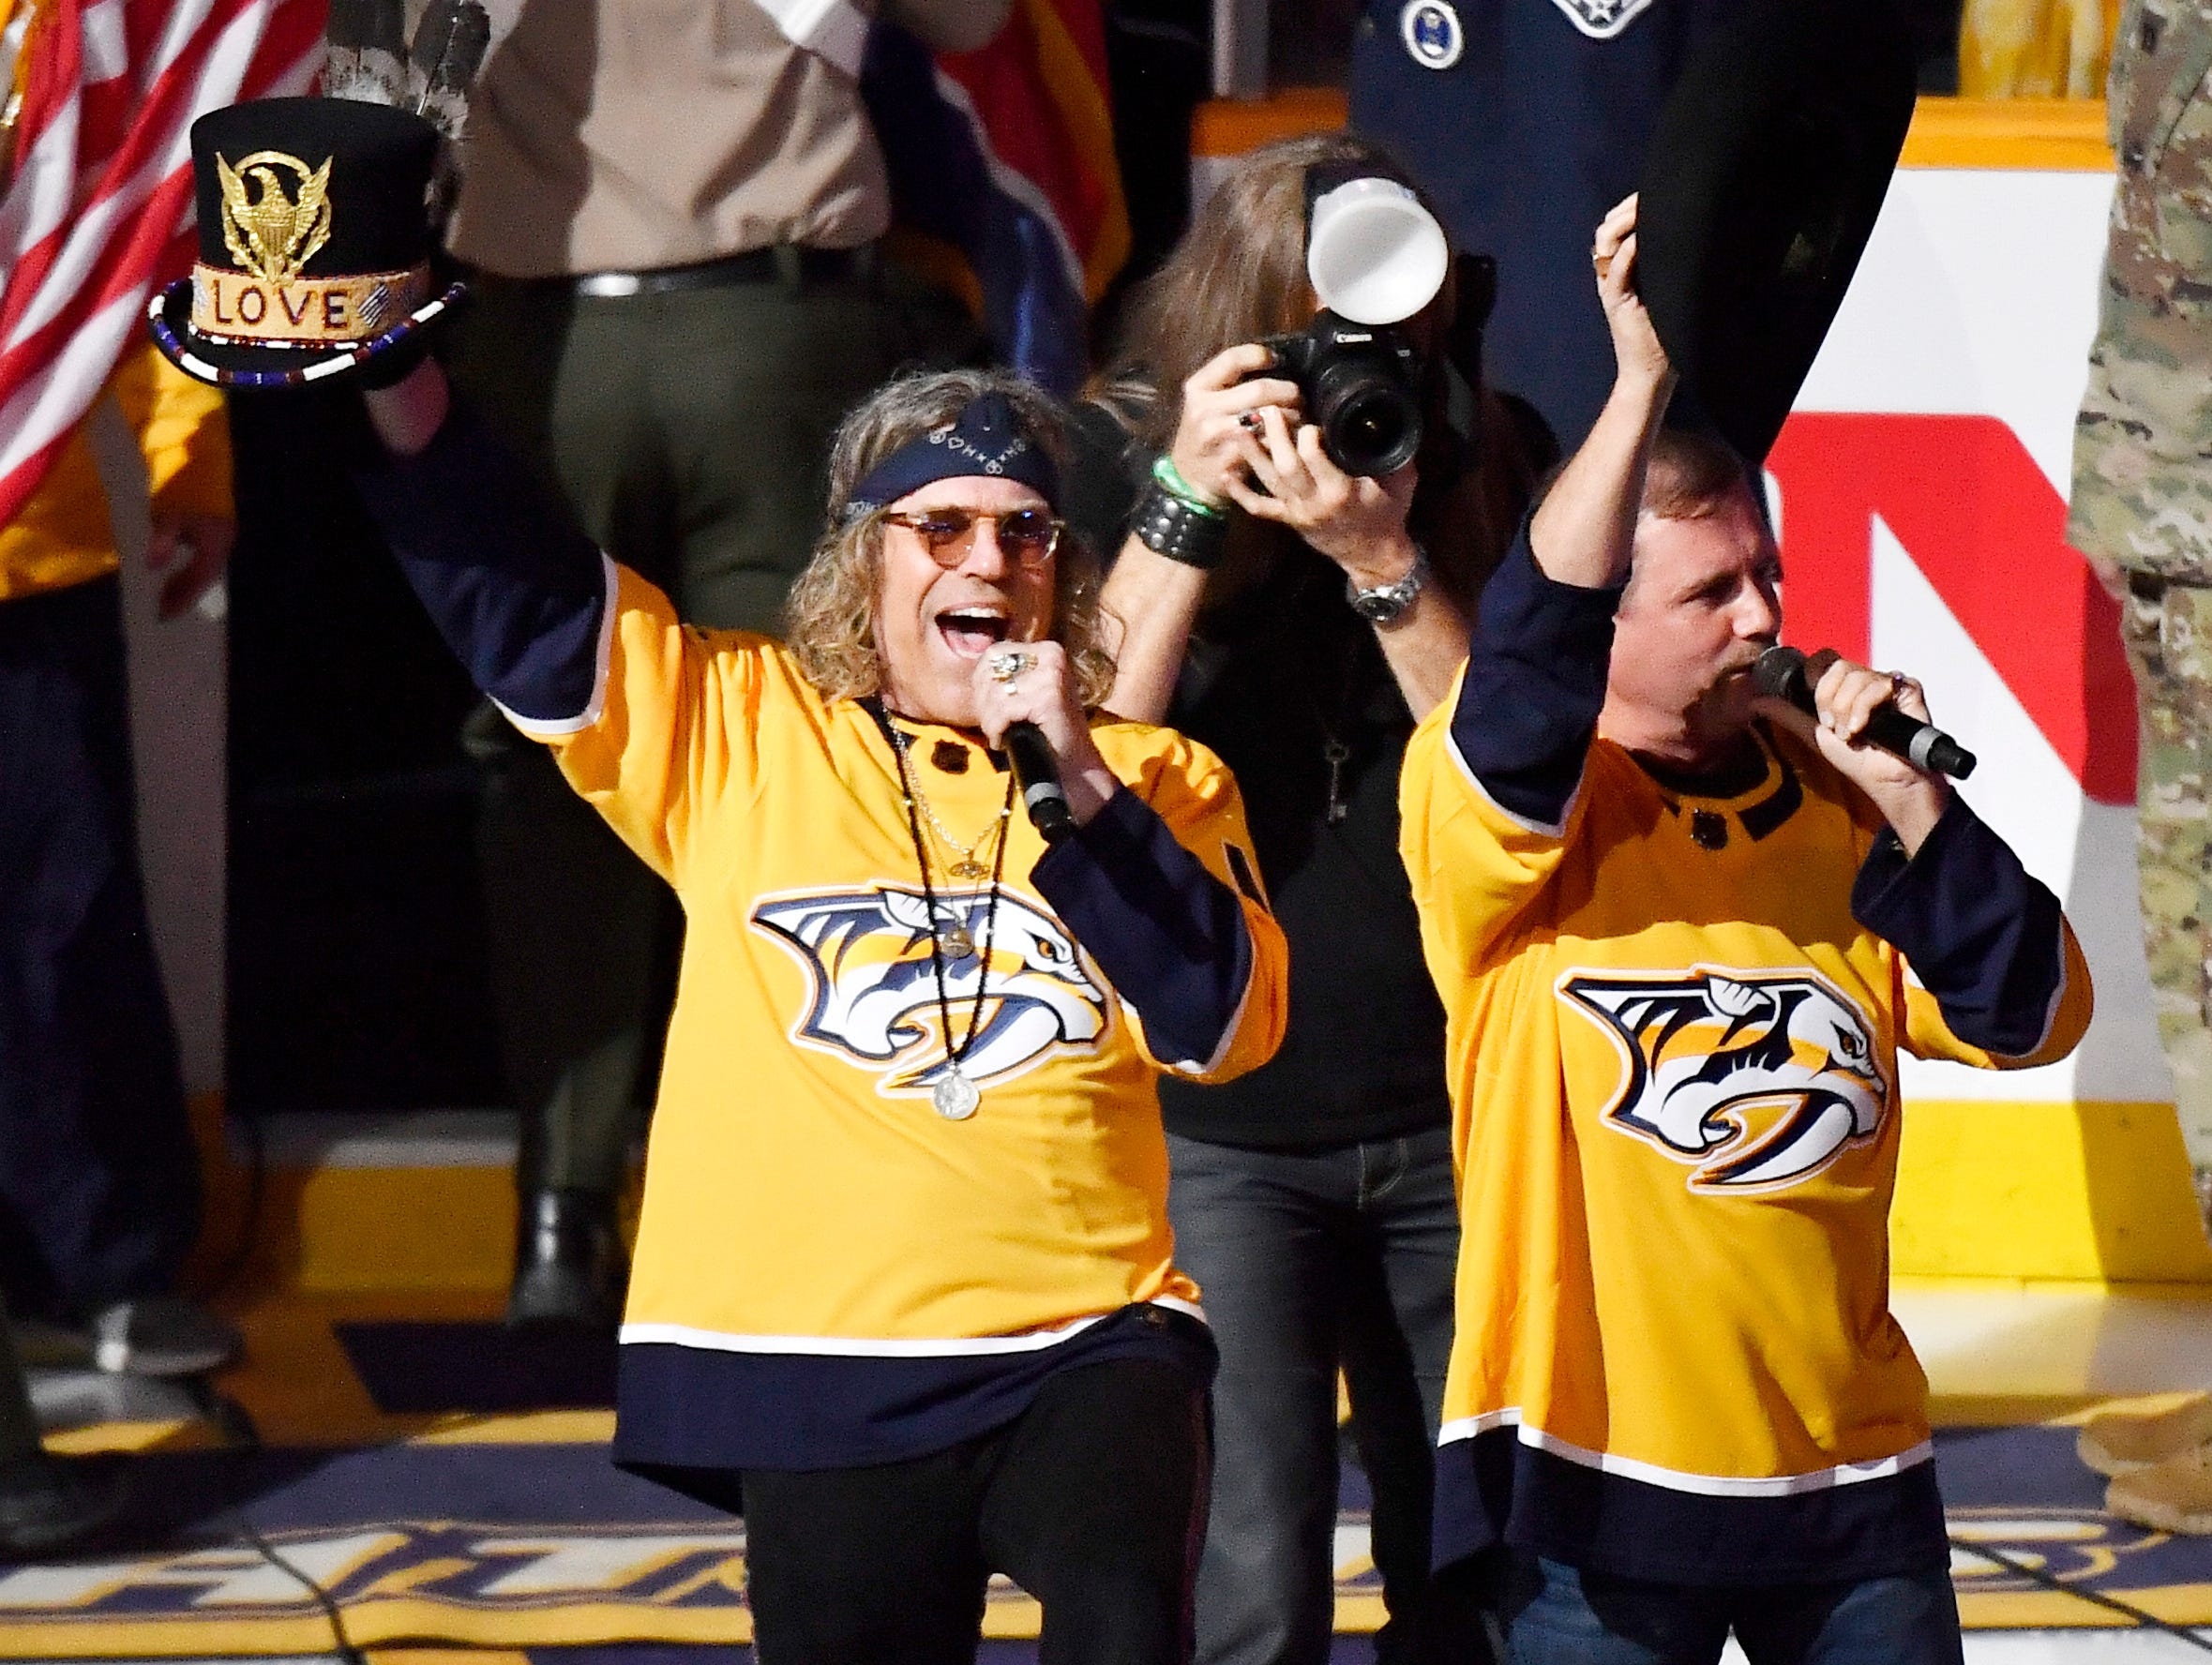 Big and Rich perform the National Anthem before the start of the Predators' divisional semifinal game against the Dallas Stars at Bridgestone Arena in Nashville, Tenn., Wednesday, April 10, 2019.